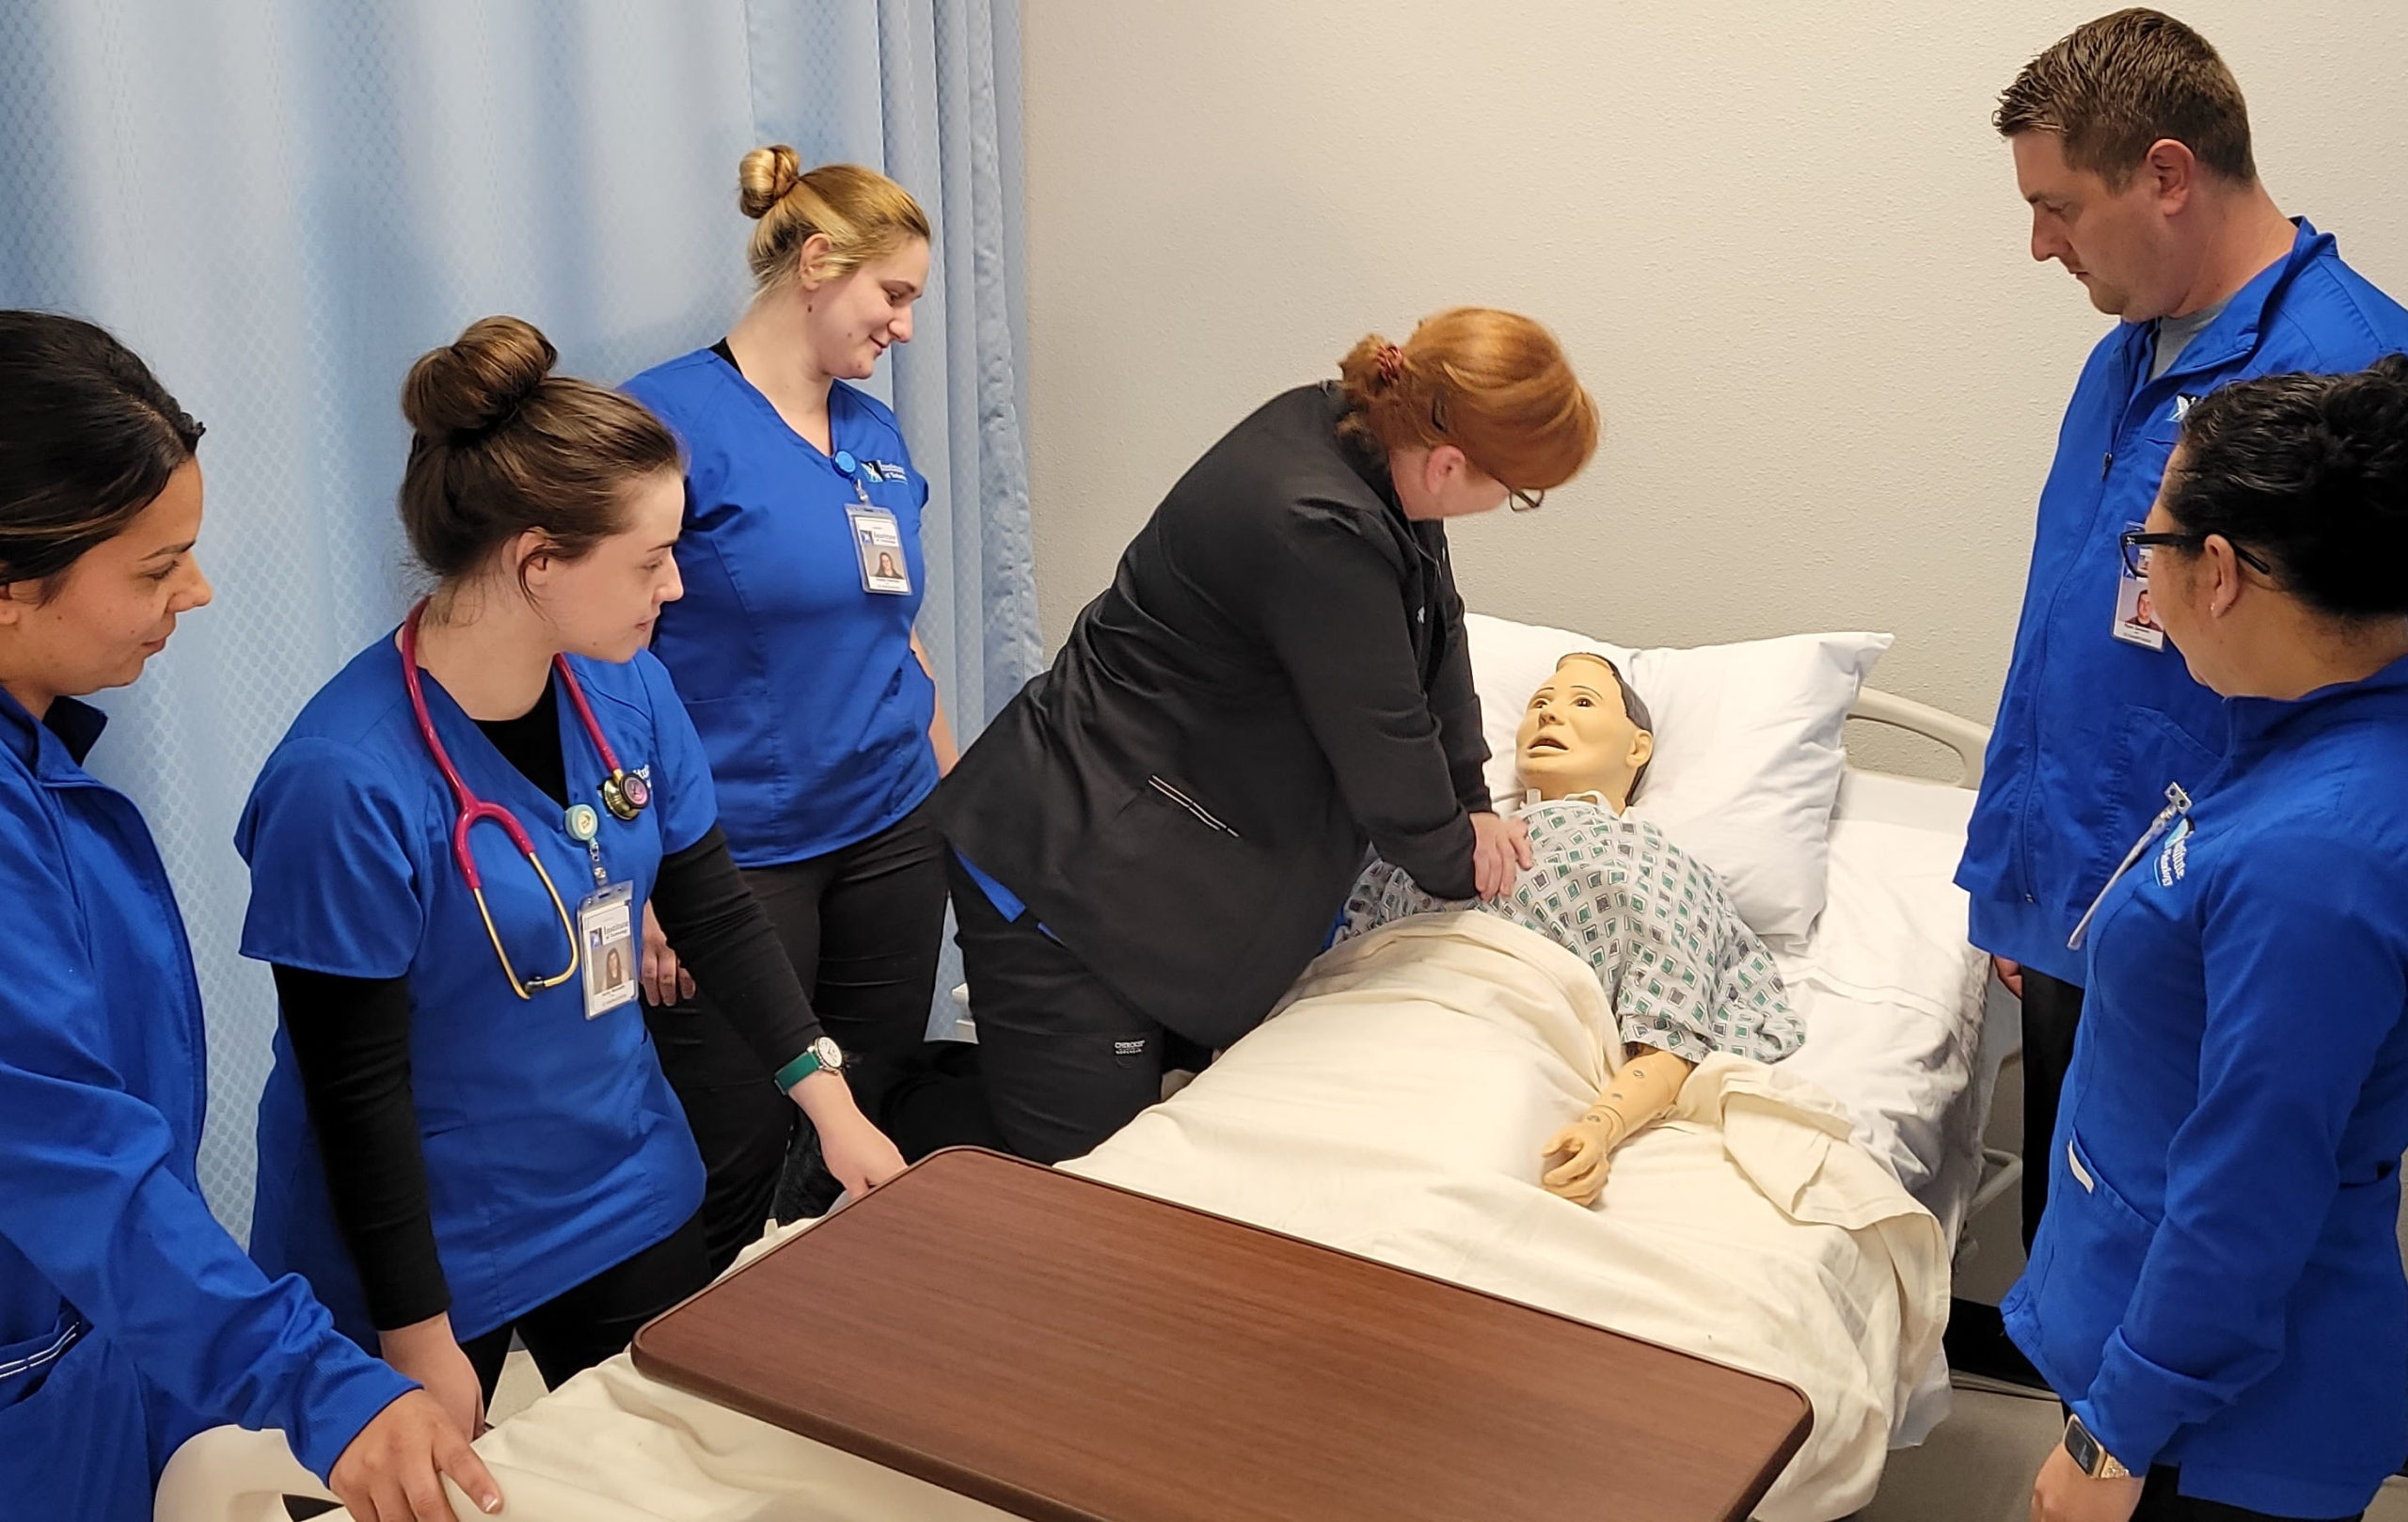 Instructor demonstrating CPR for students